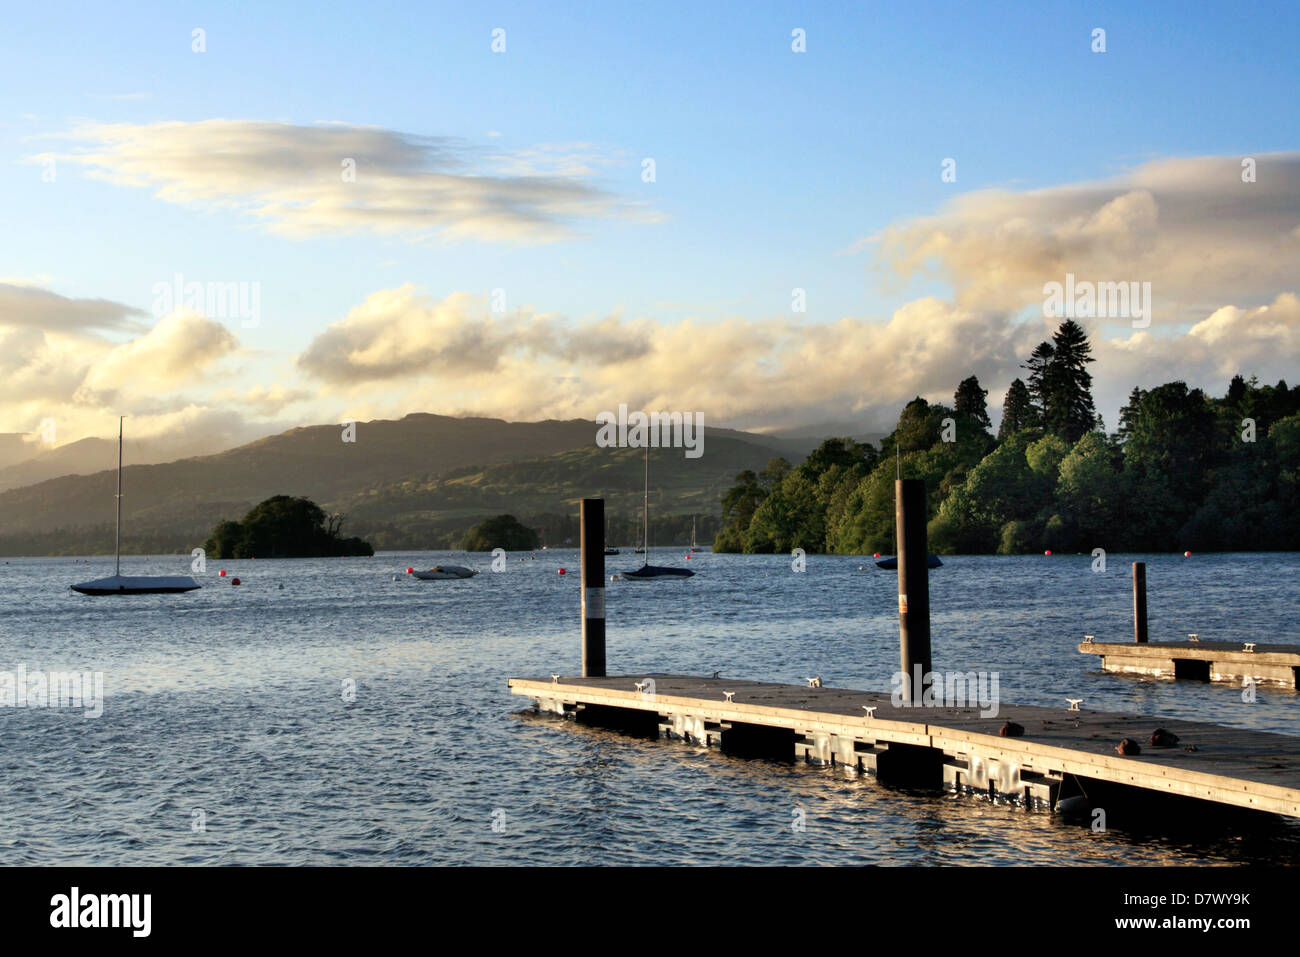 Lake Windermere at Bowness in the Lake District national park ,Cumbria. - Stock Image